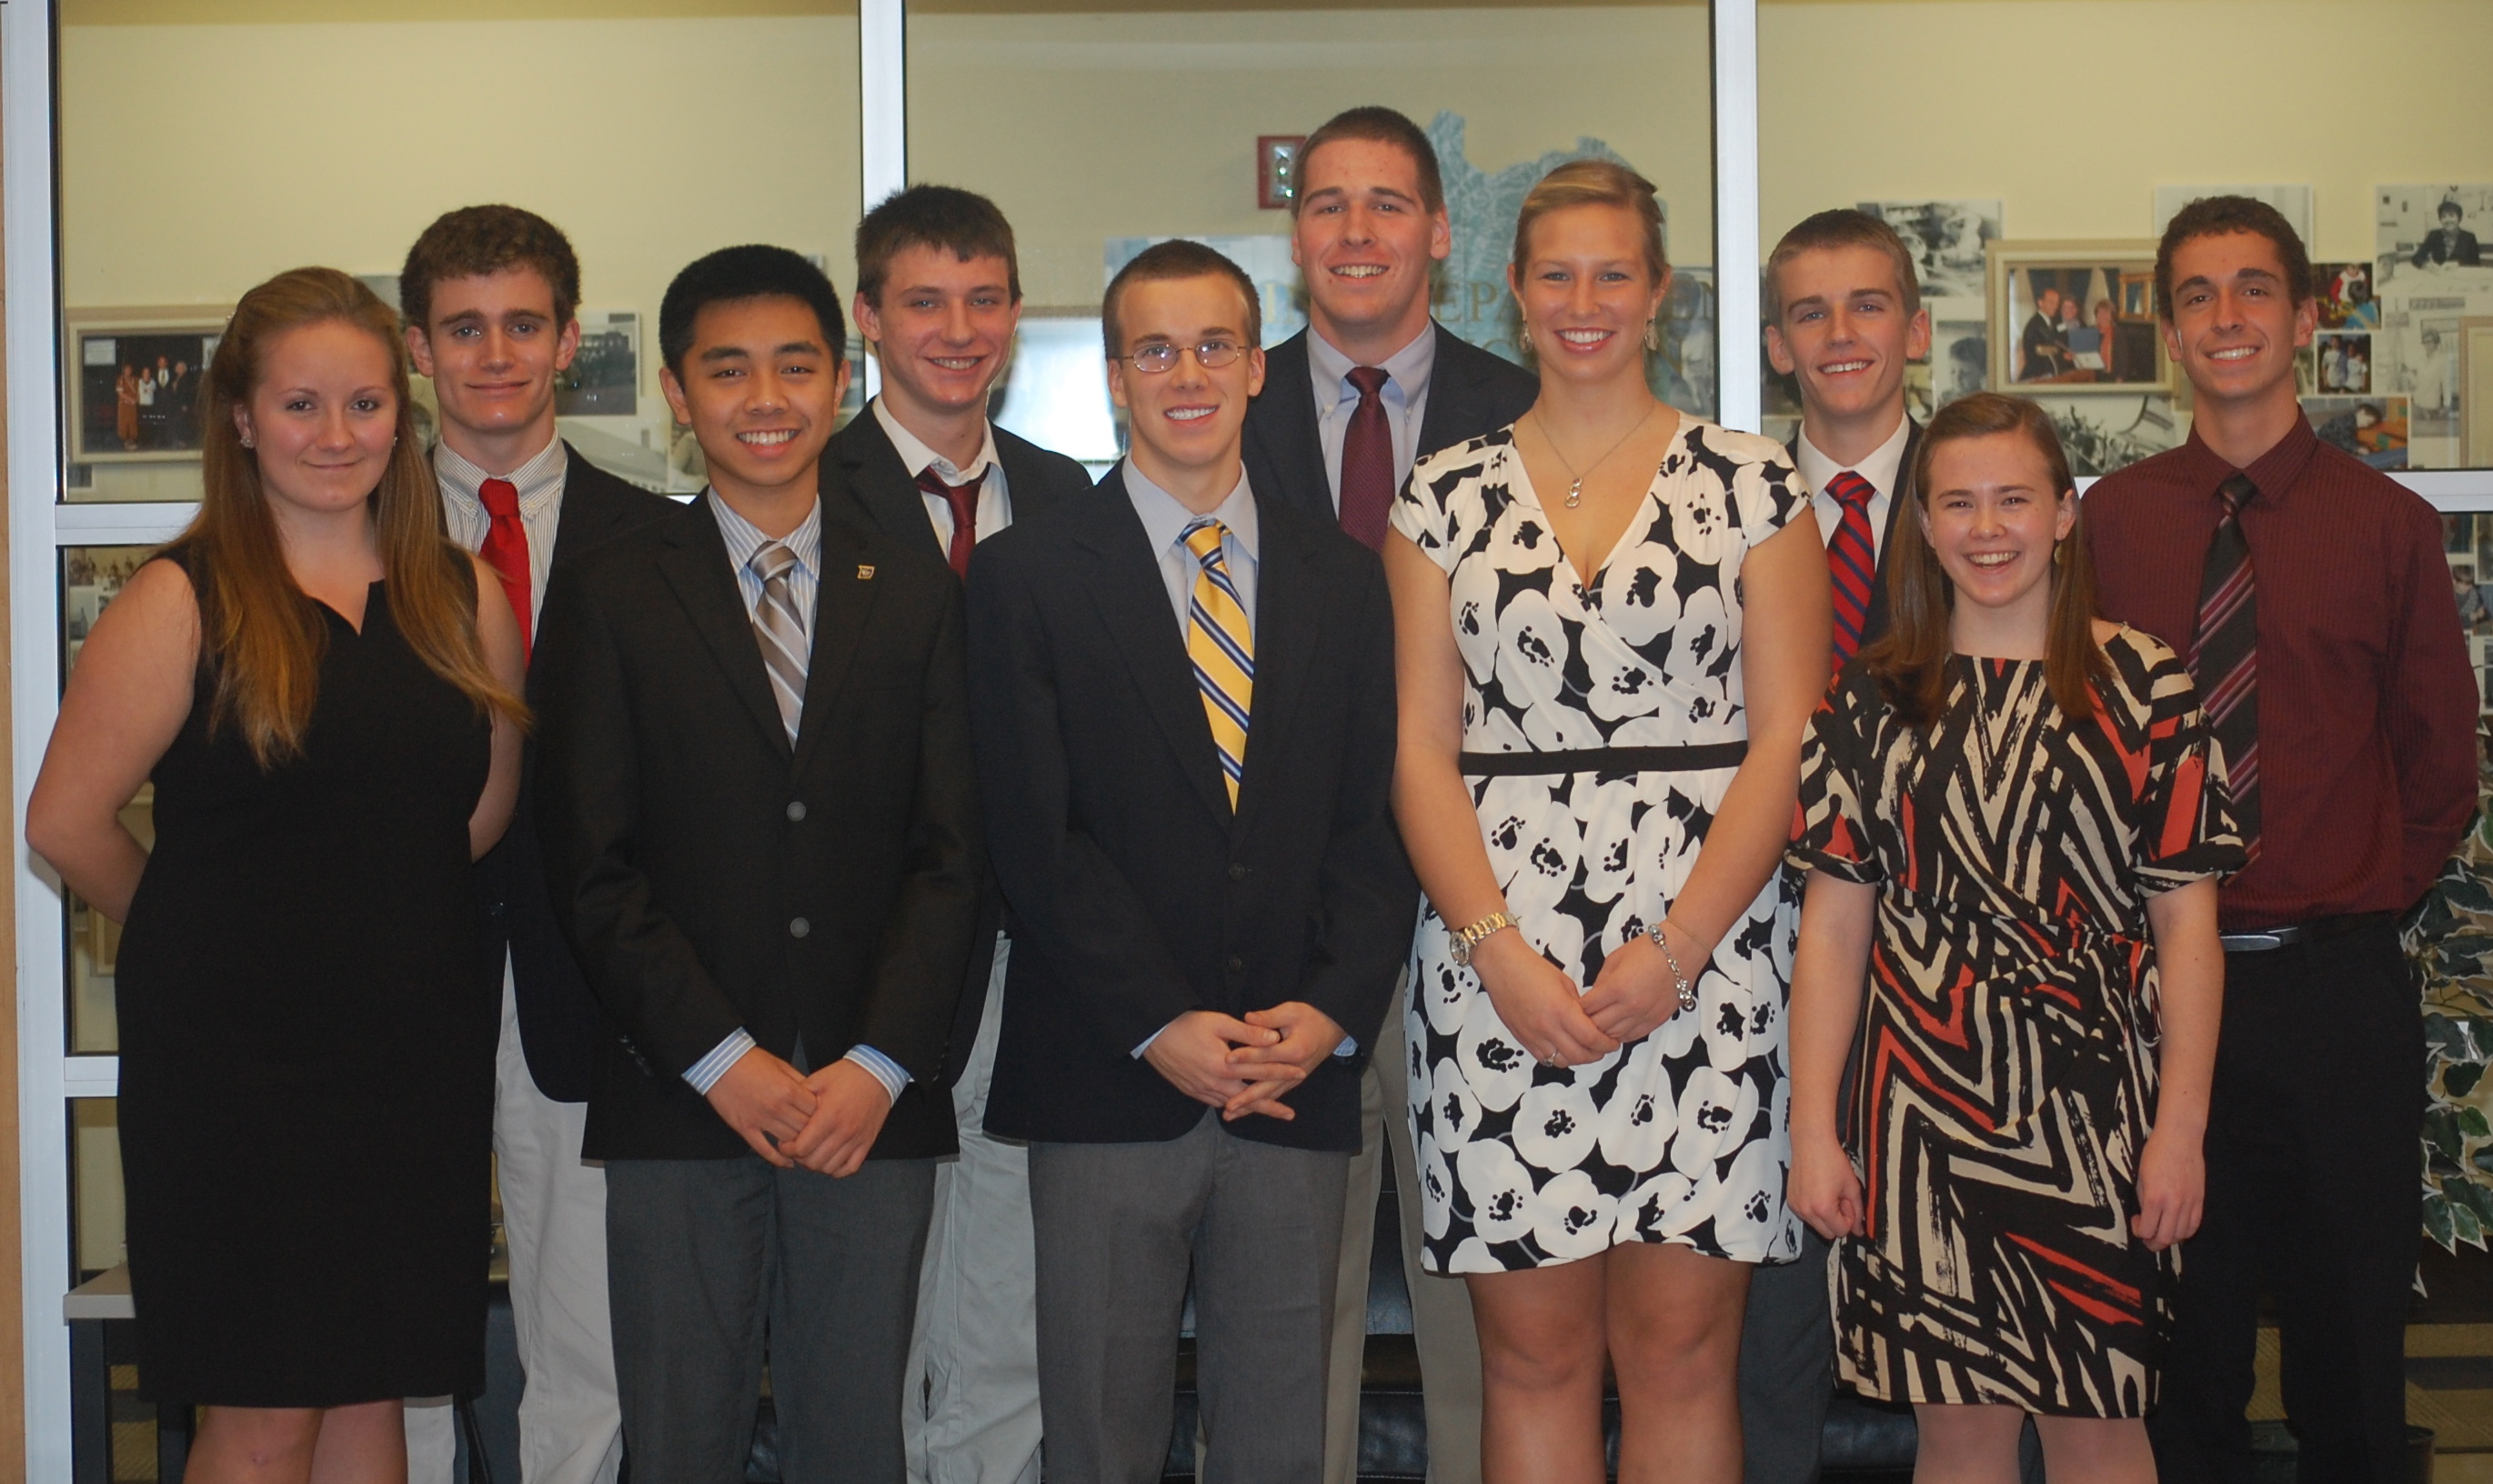 Group shot of the 10 student finalists for the 2013 United States Senate Youth Program.